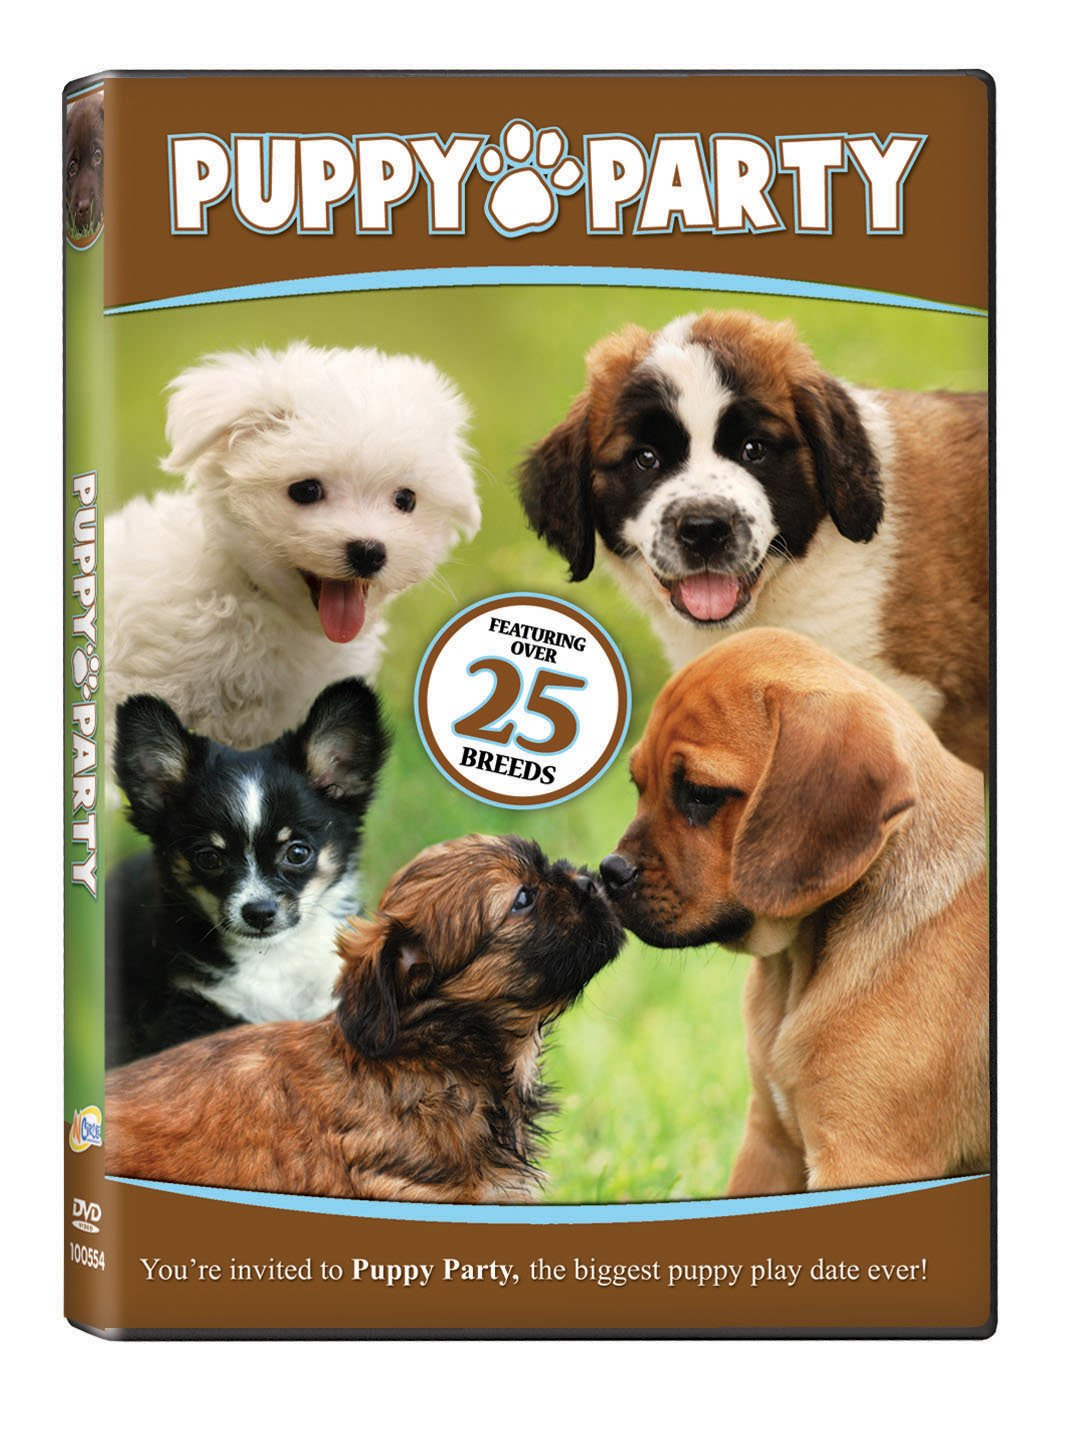 Animal Atlas - Puppy Party Puppies! LongNeedle Entertainment NCircle Entertainment 5821715